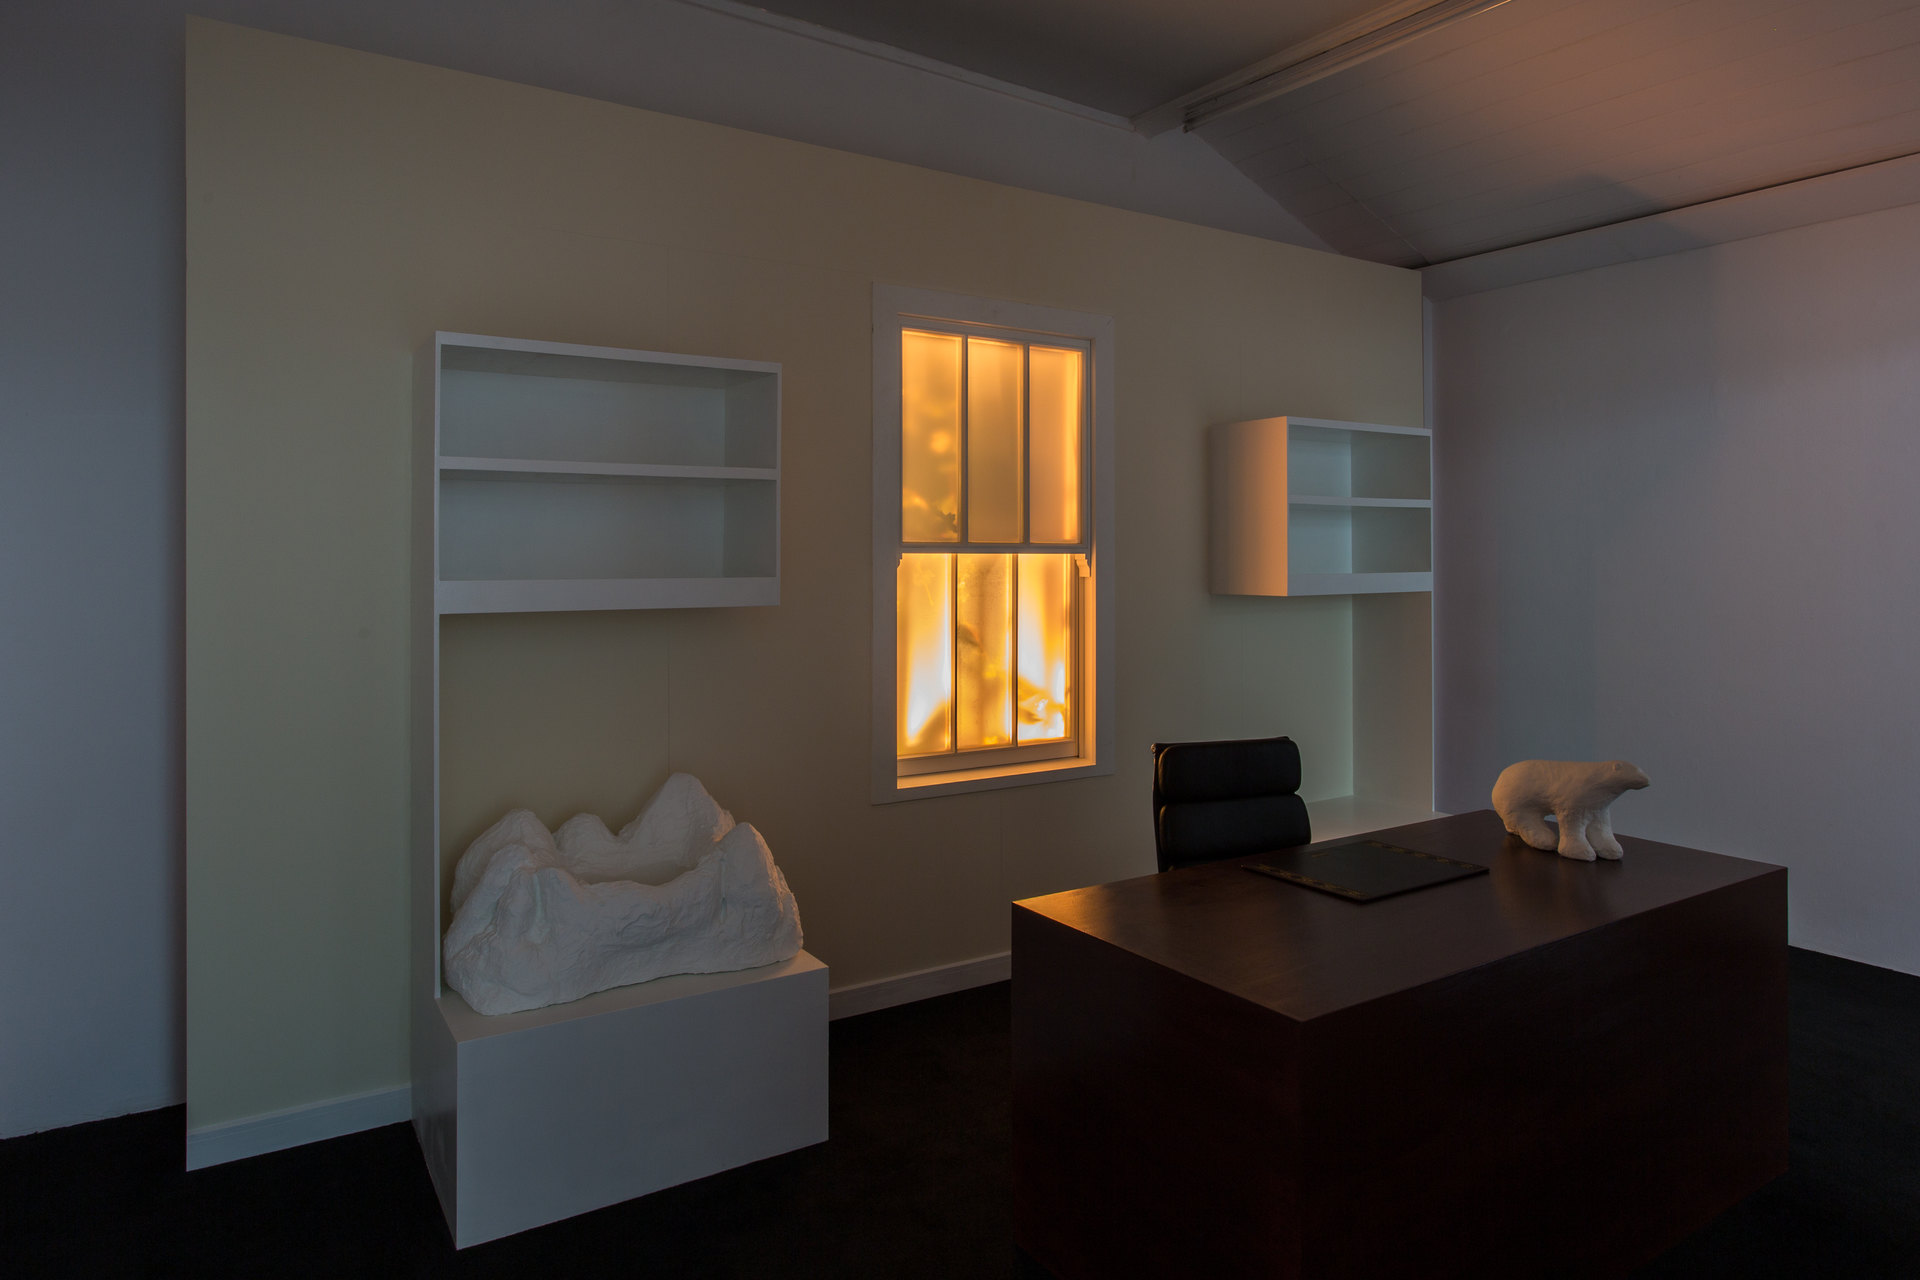 Angharad Williams and Mathis Gasser, 'Office', 2018, Hergest:Nant, Cell Project Space